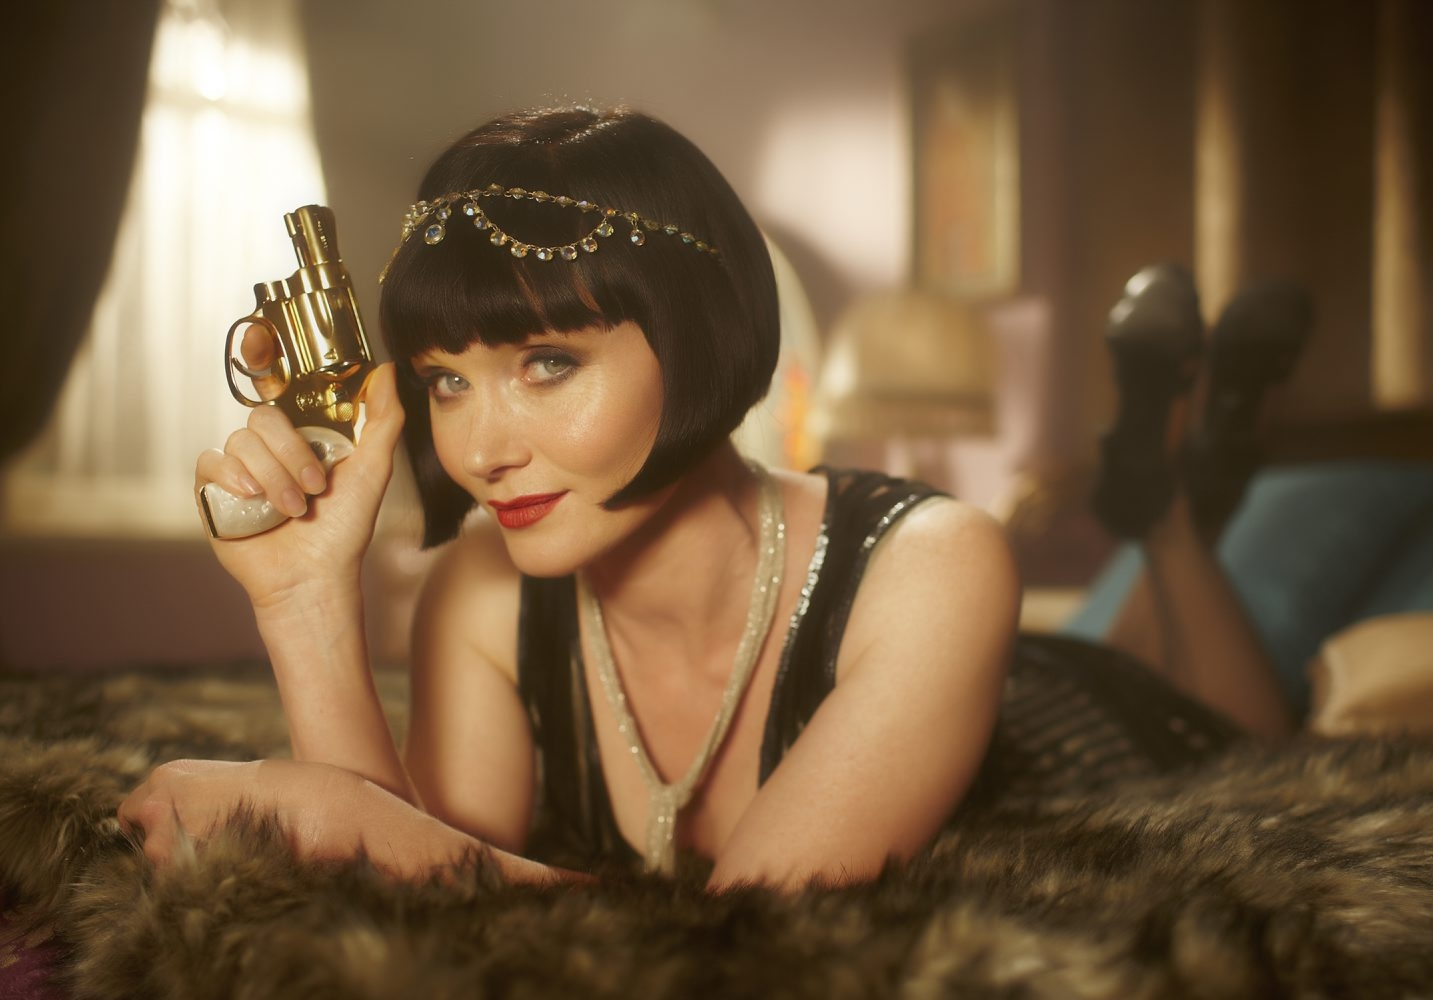 Essie Davis plays Phryne Fisher, an heiress who solves murders in 1920s Australia.